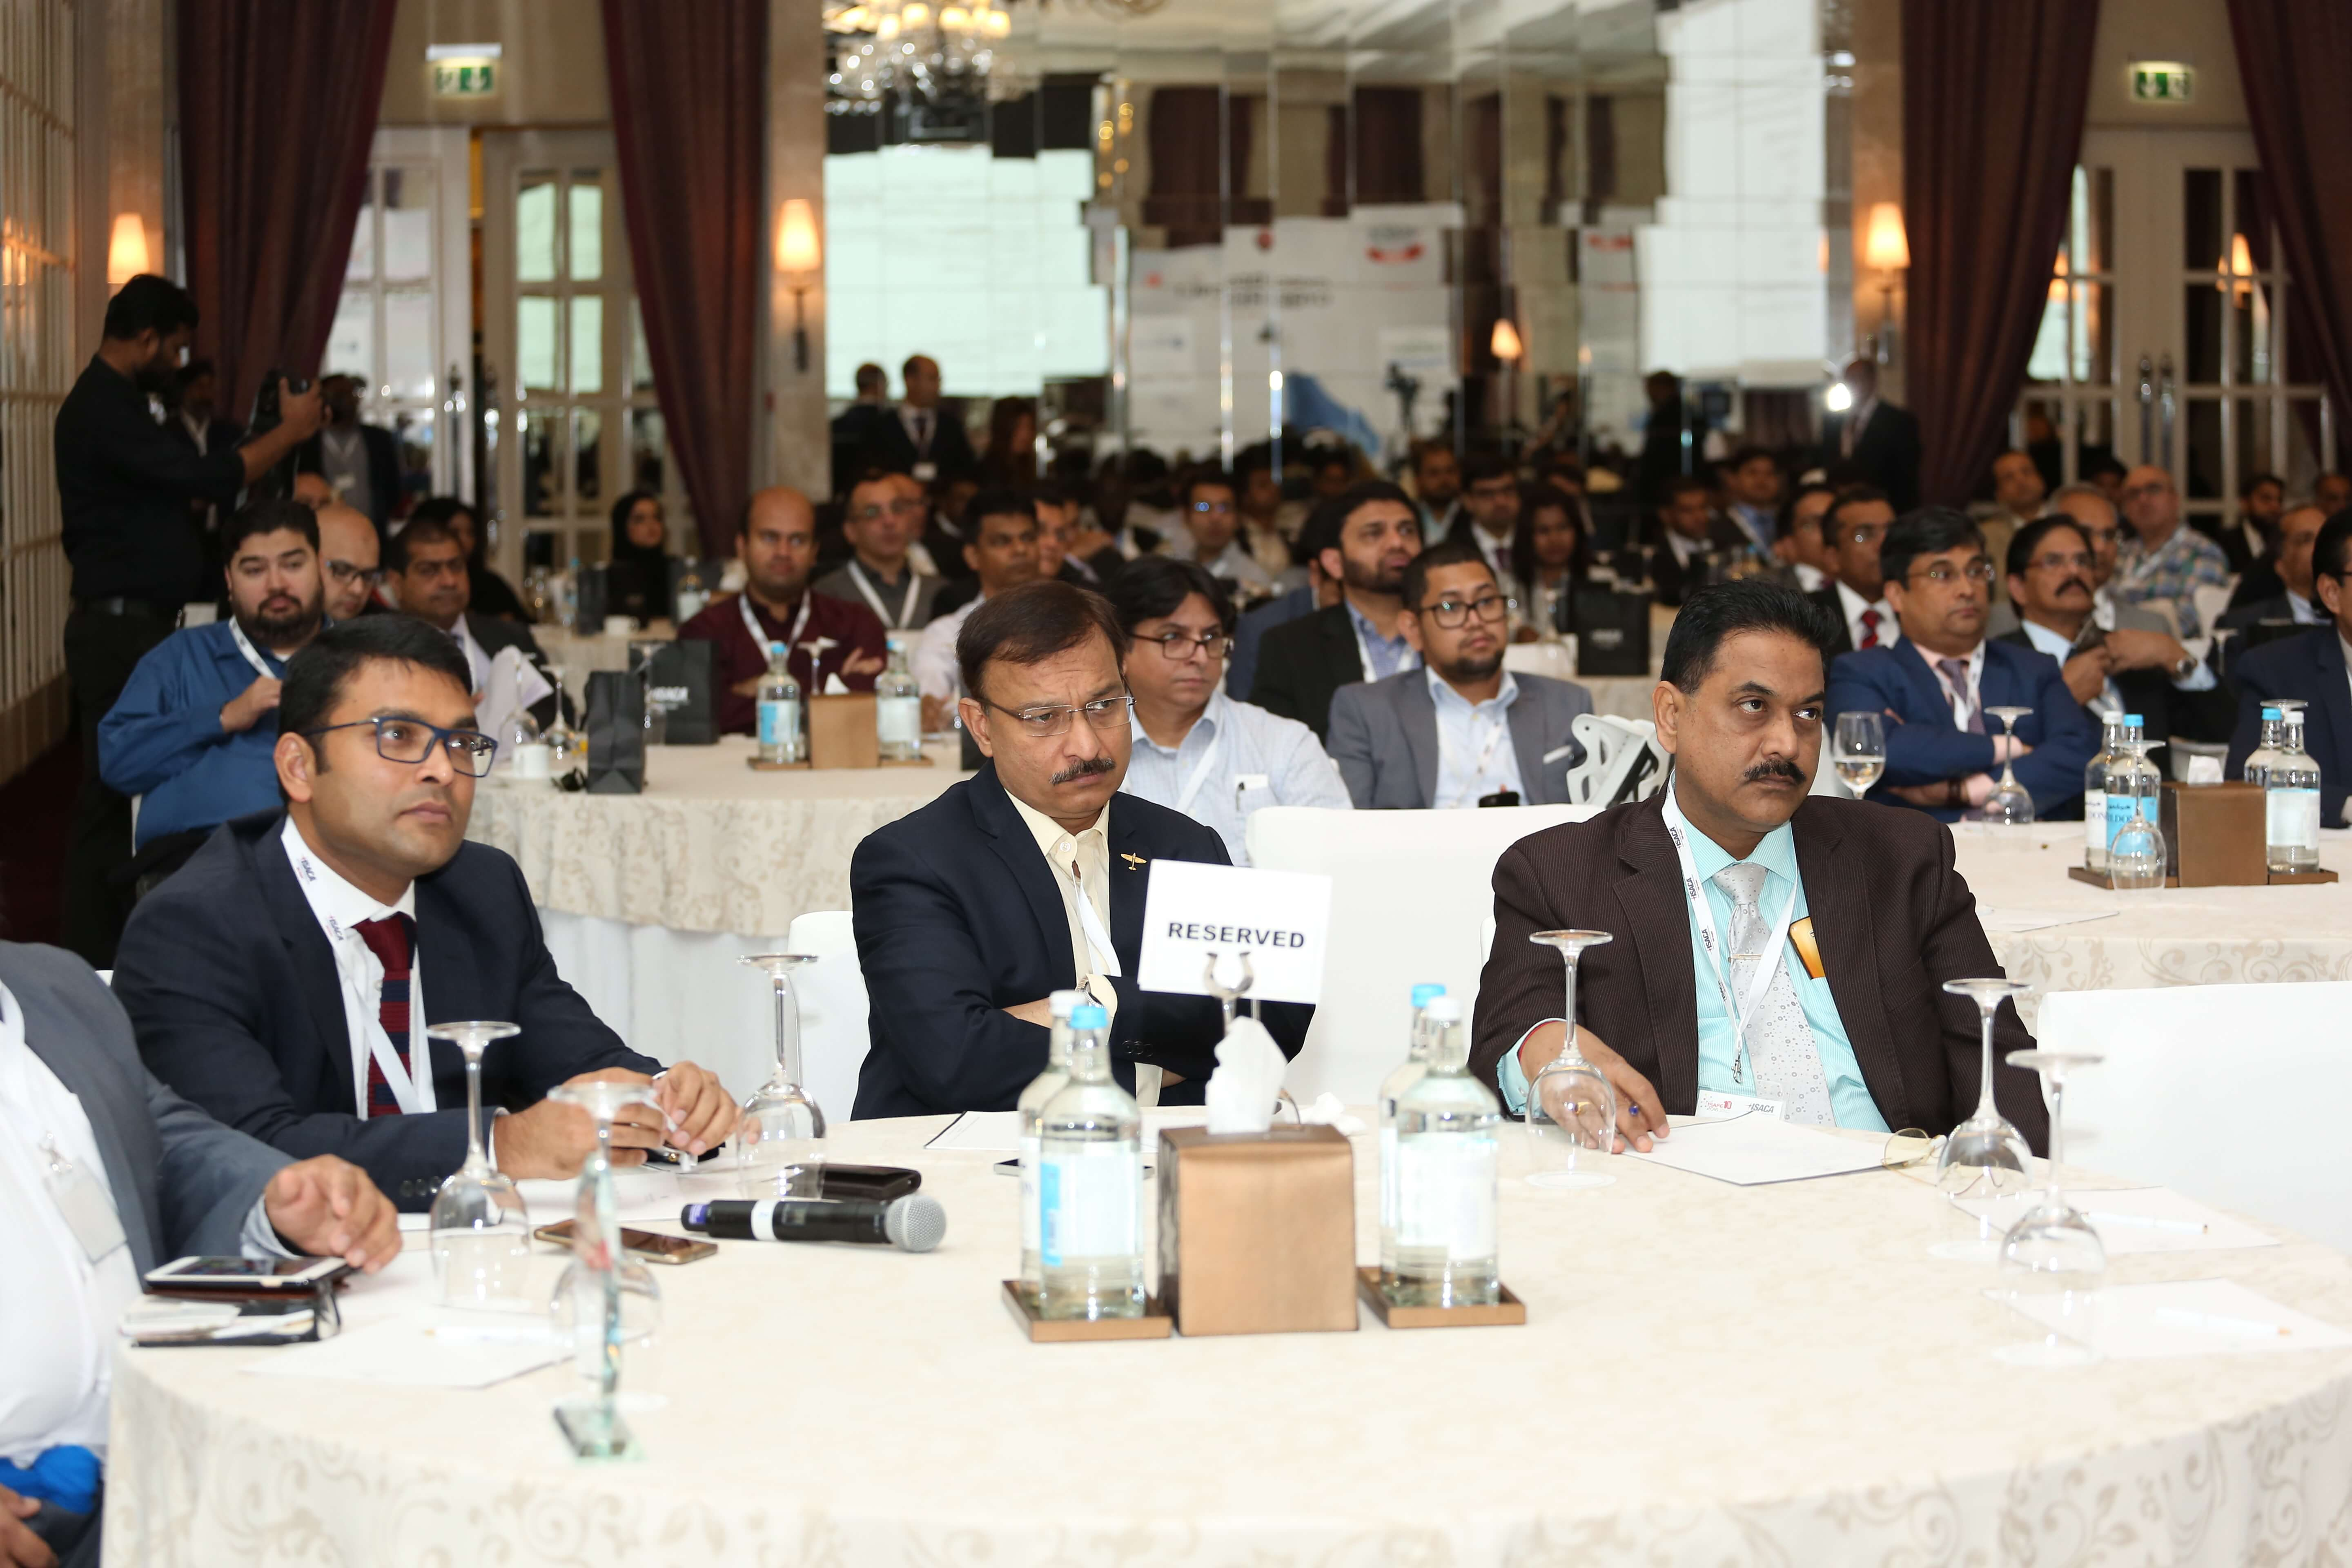 Microsoft_ISACA_Dubai_Cyber_Security_Event.jpg